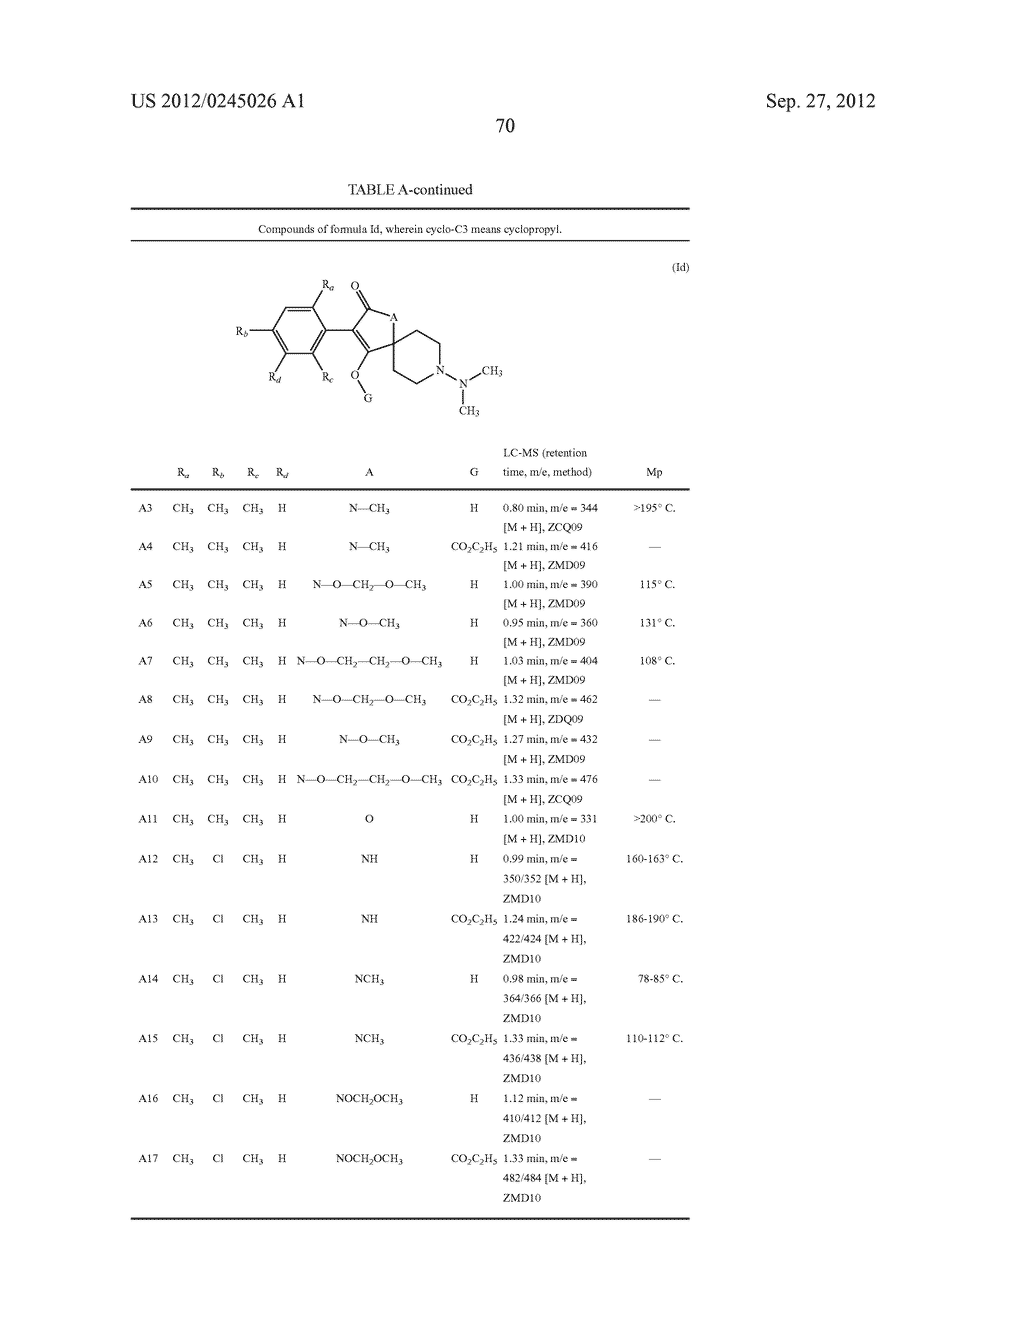 SPIRO FUSED 1-AMINO - PIPERDINE PYRROLIDINE DIONE DERIVATIVES WITH     PESTICIDAL ACTIVITY - diagram, schematic, and image 71